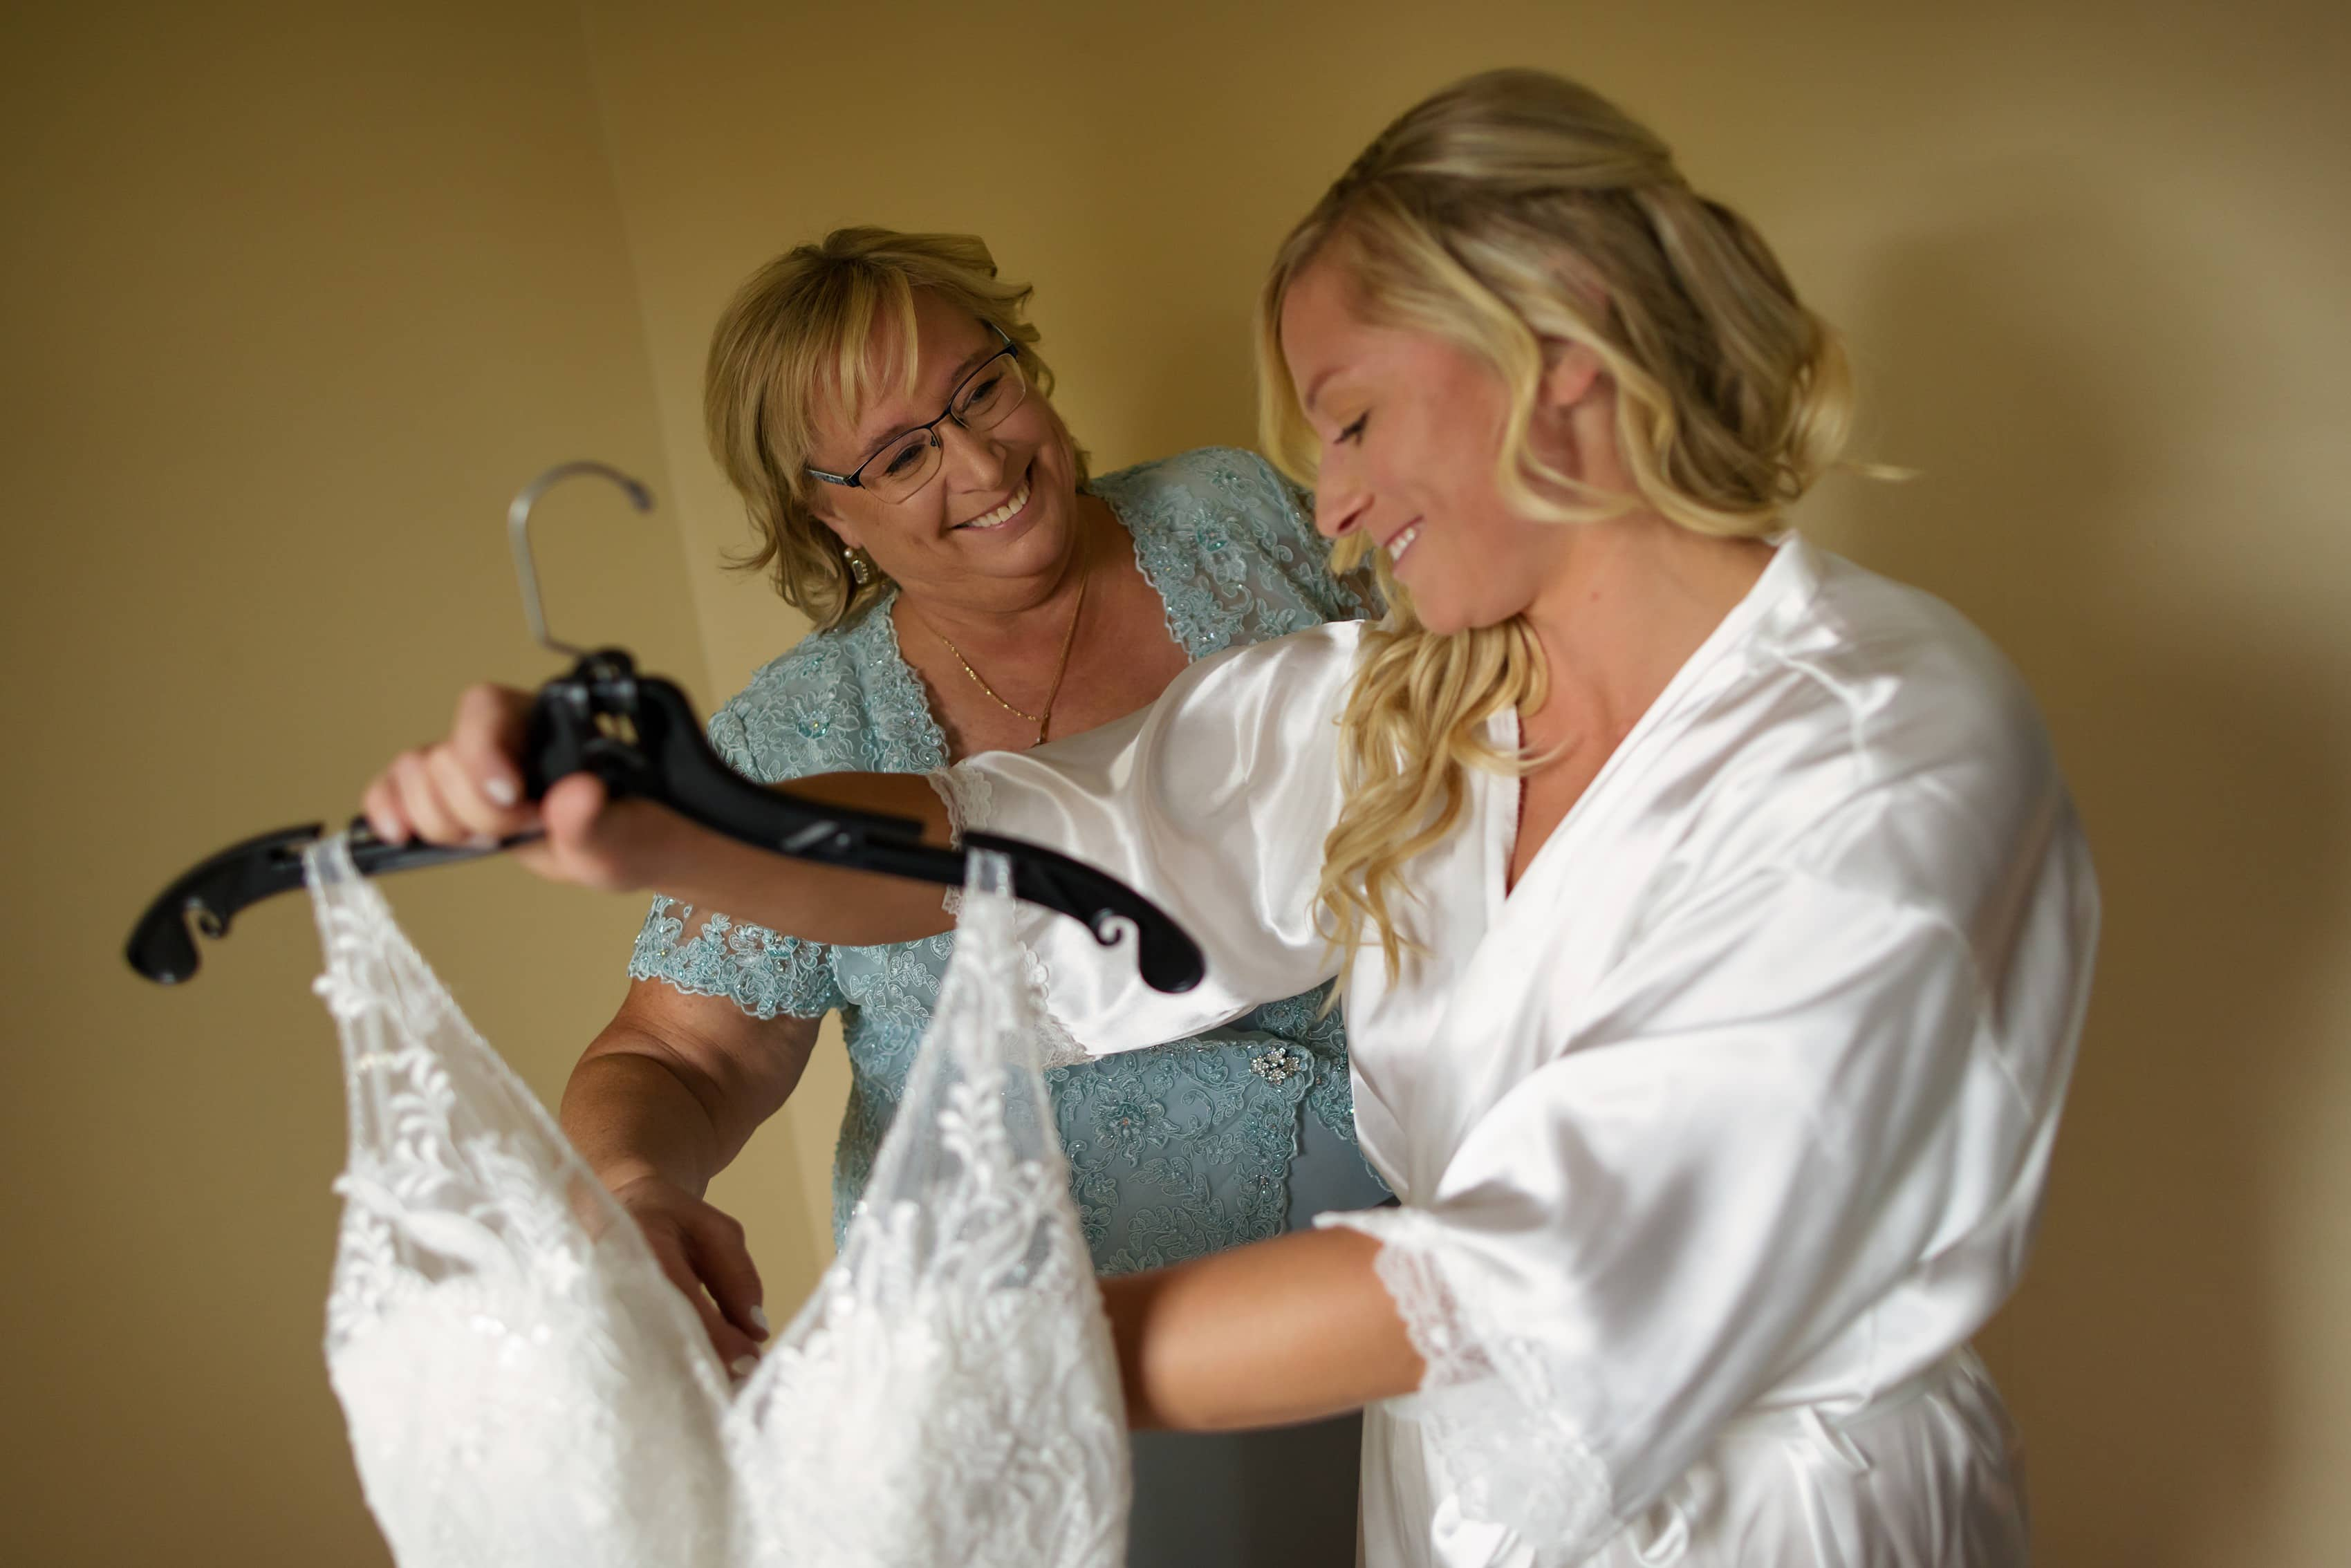 bride and mom smile while getting ready to put on wedding dress